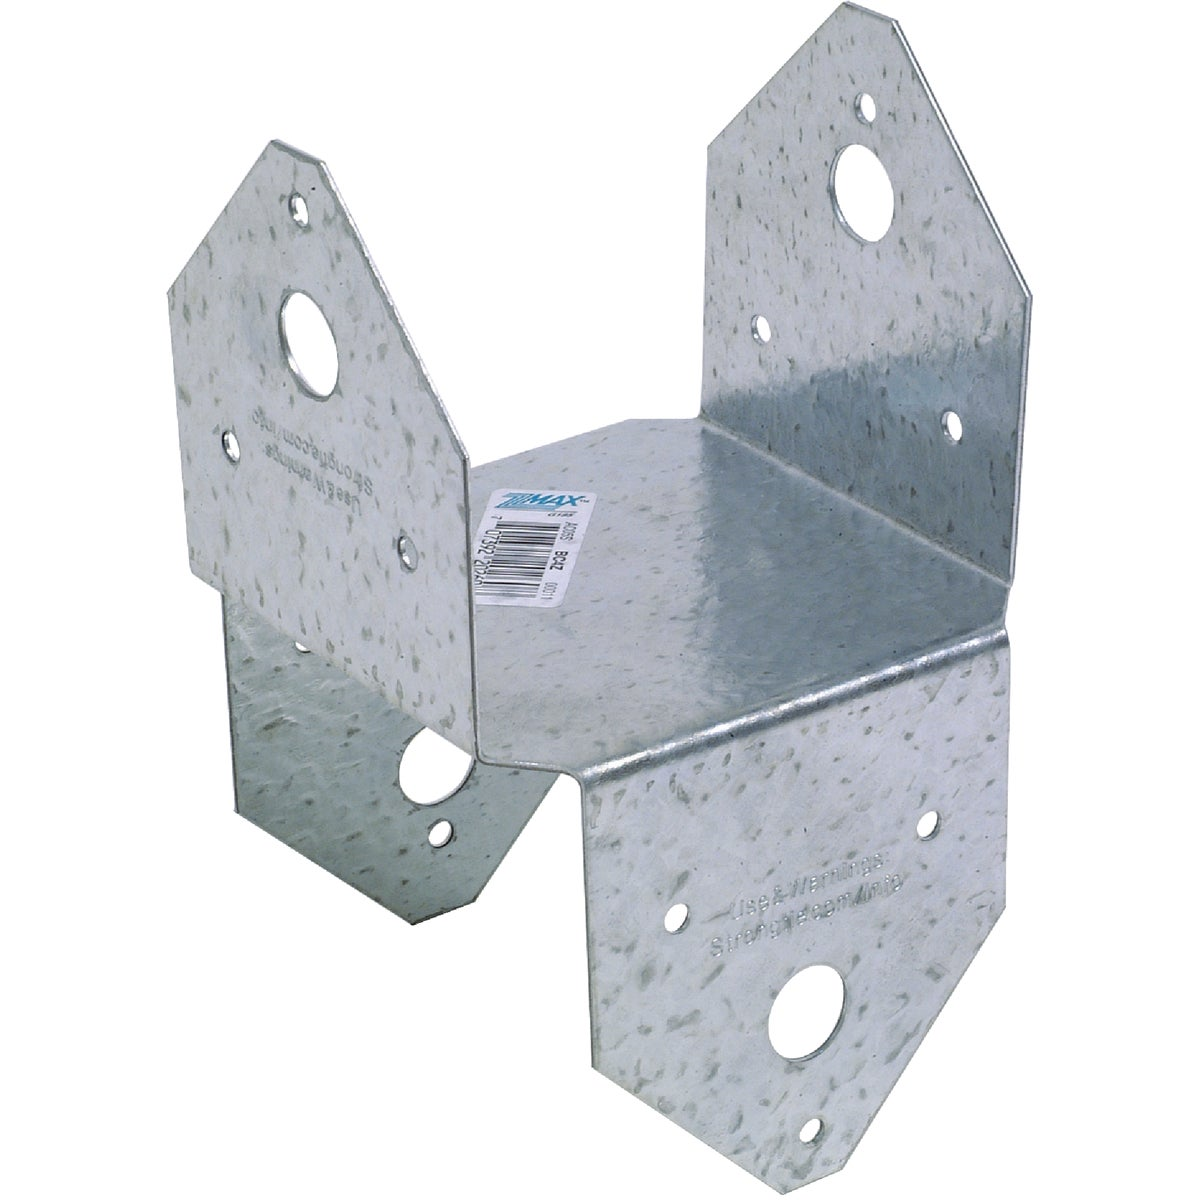 4X4 POST CAP BASE Z-MAX - BC4Z by Simpson Strong Tie